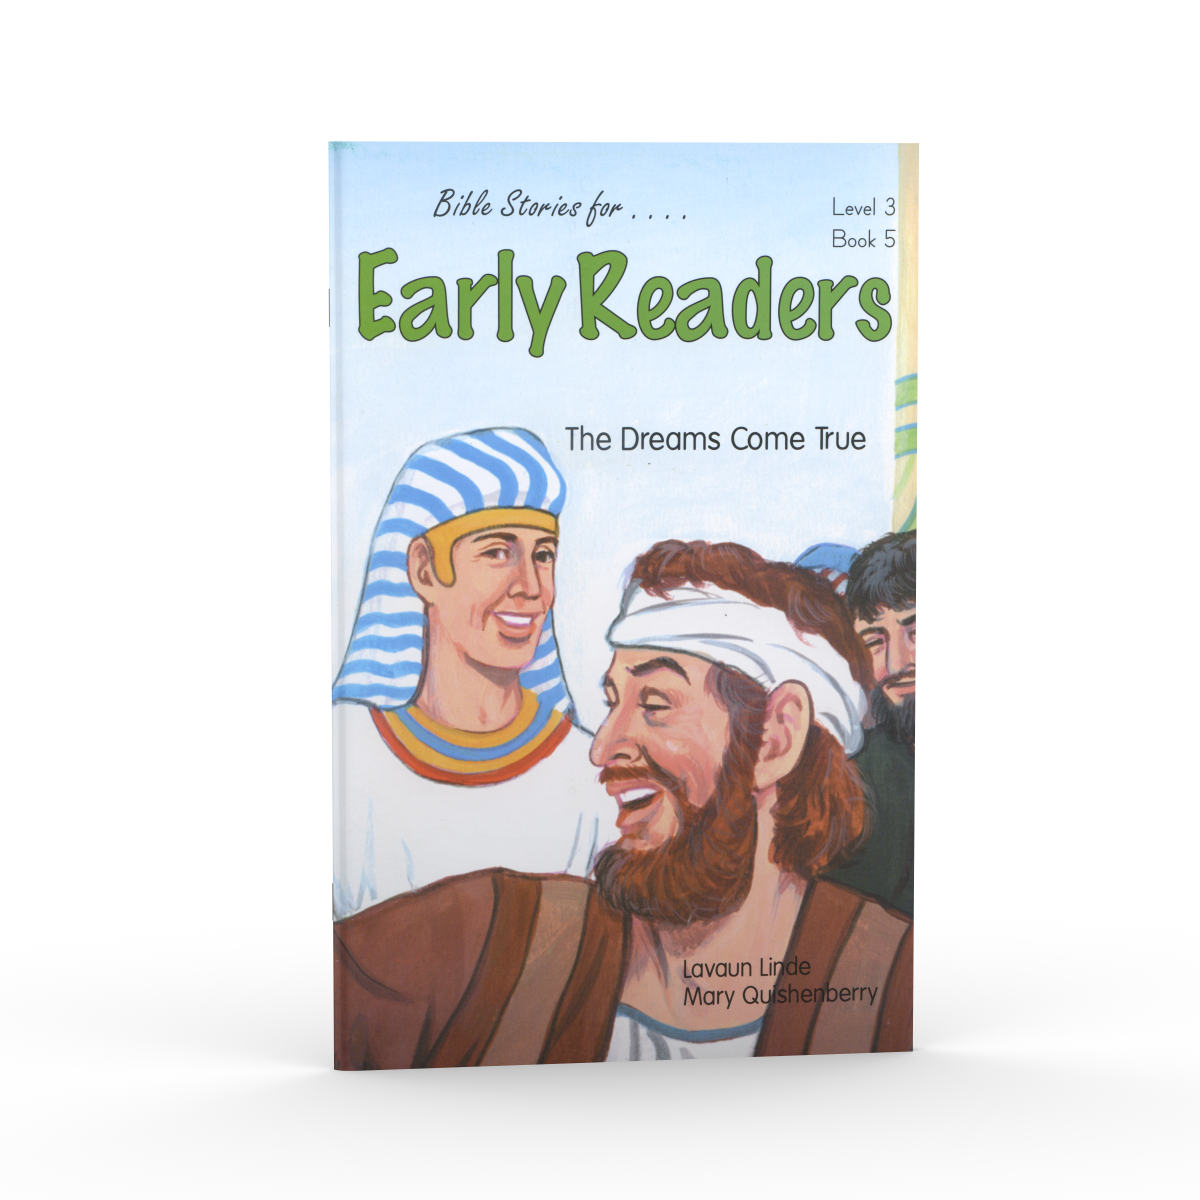 The Dreams Come True (Bible Stories for Early Readers – Level 3, Book 5)